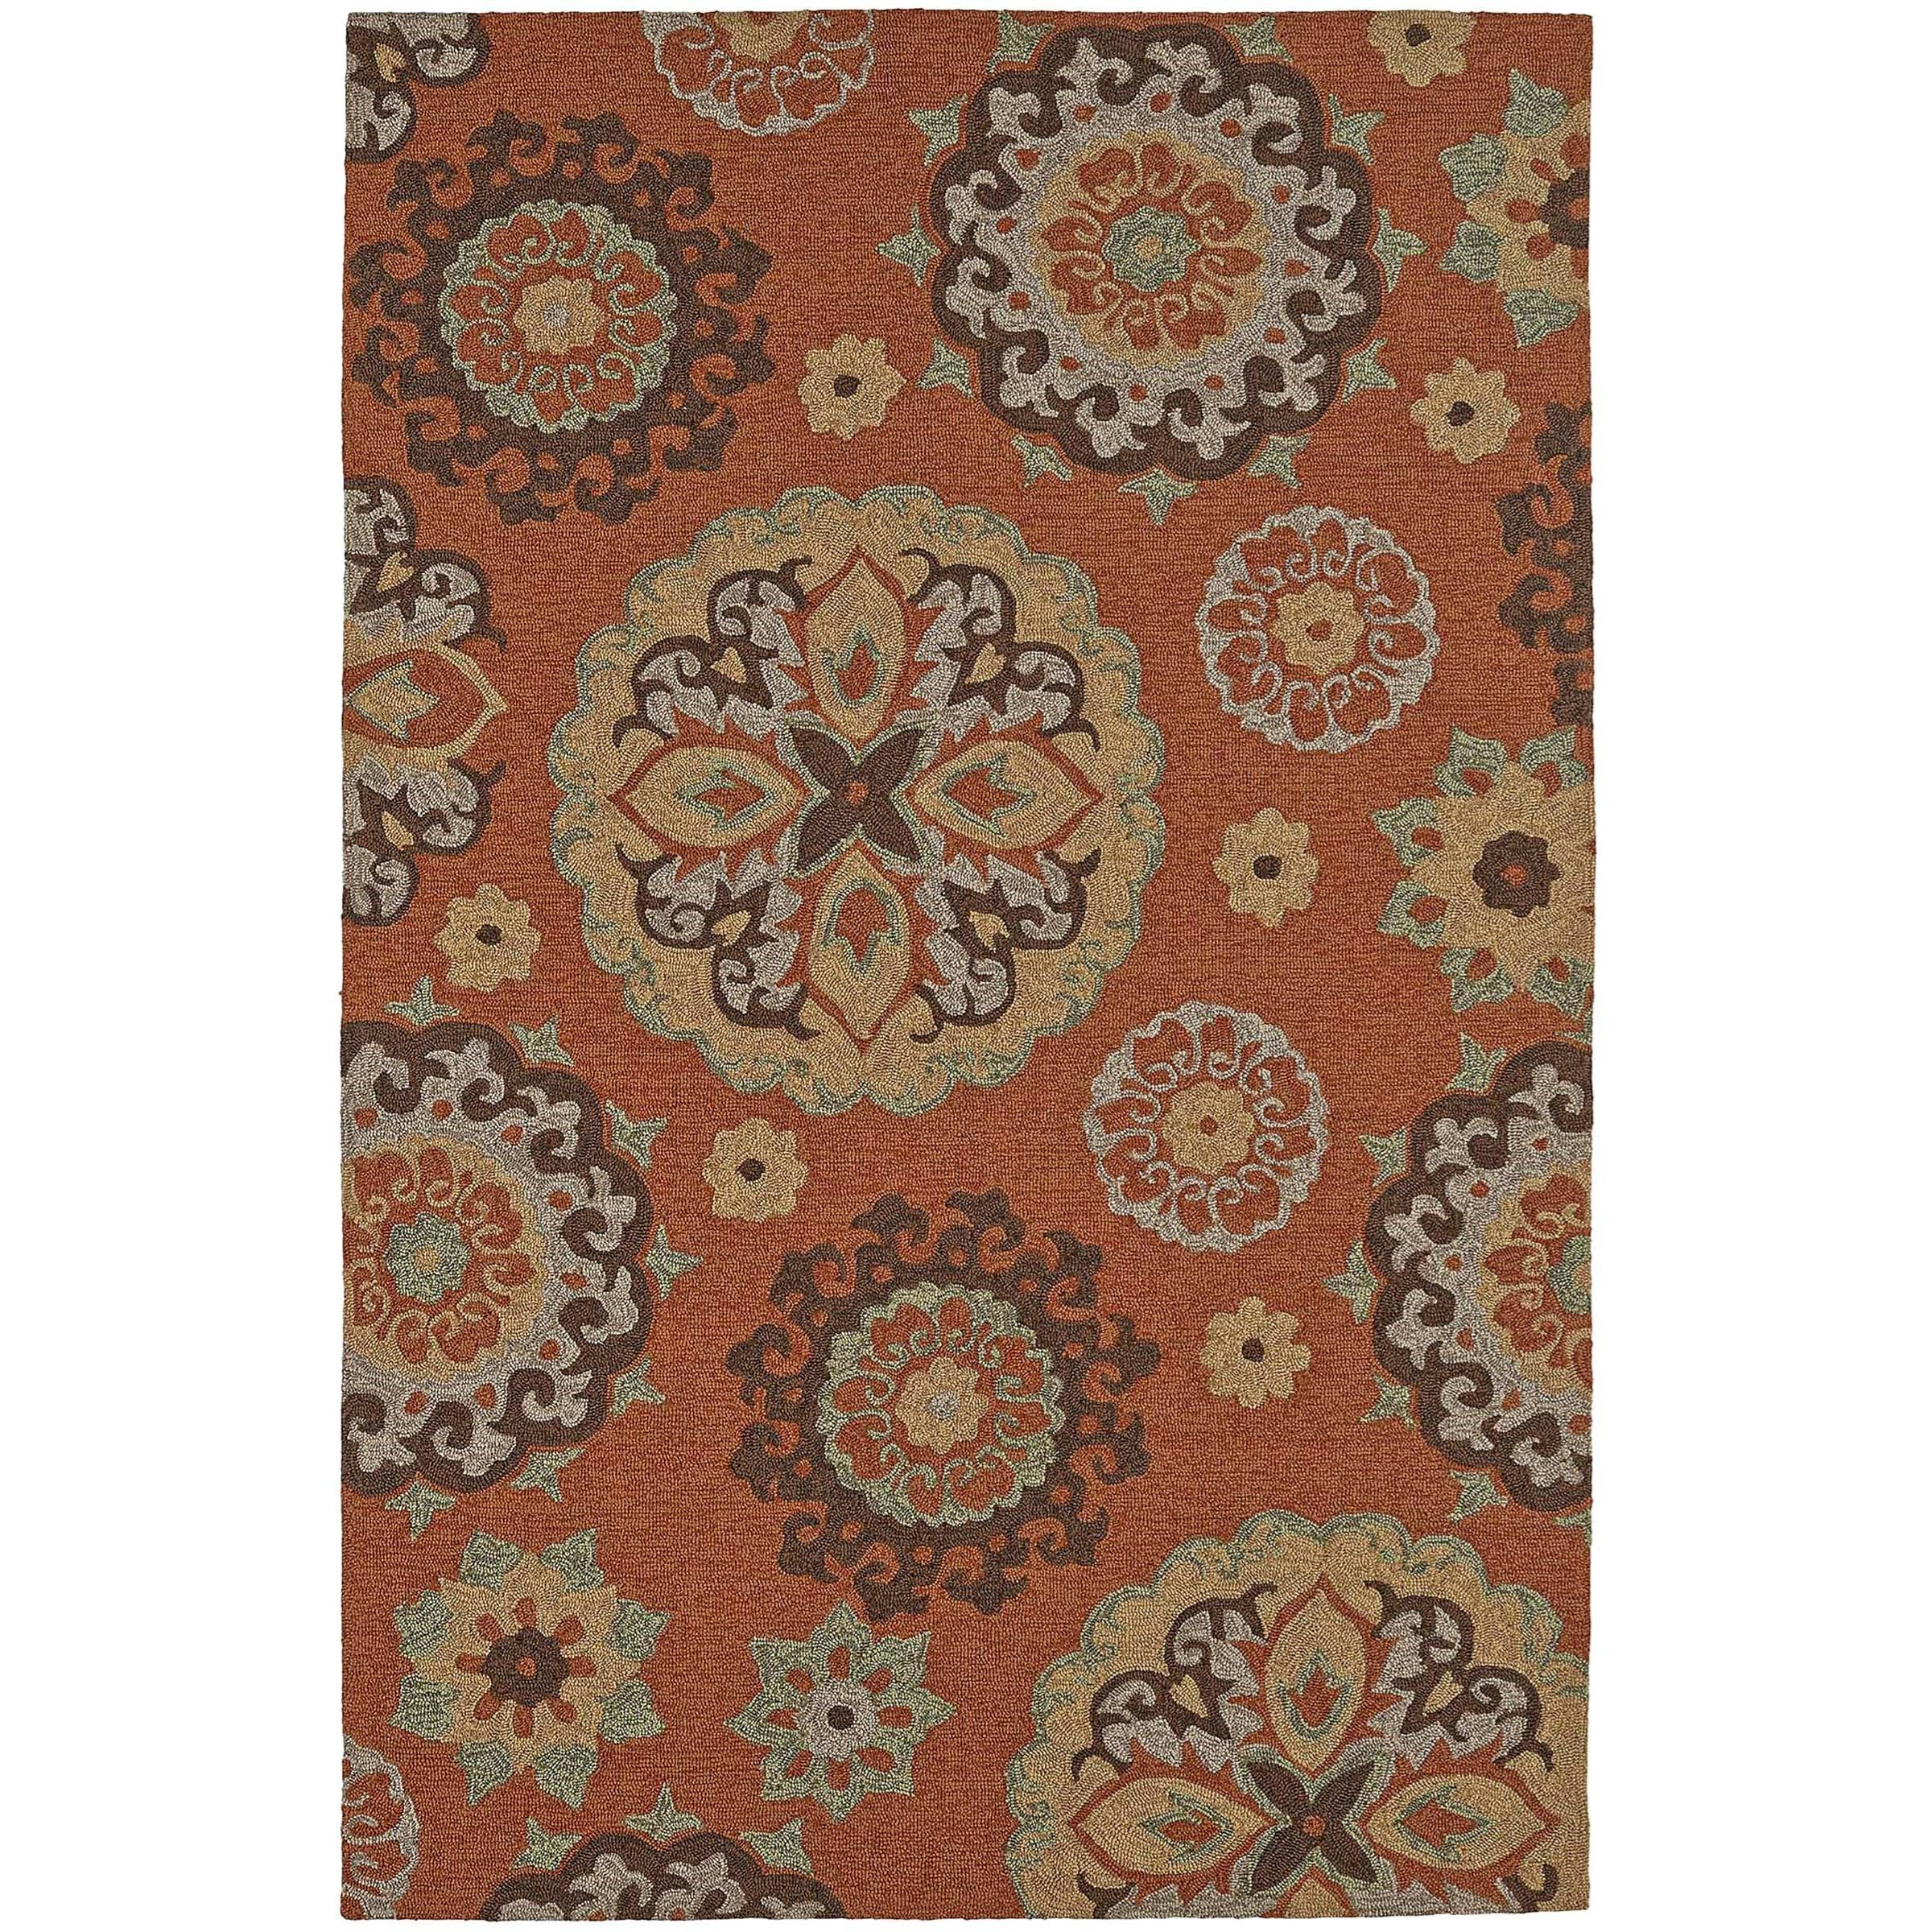 Cabana Spice 8'X10' Rug by Dalyn at Fashion Furniture